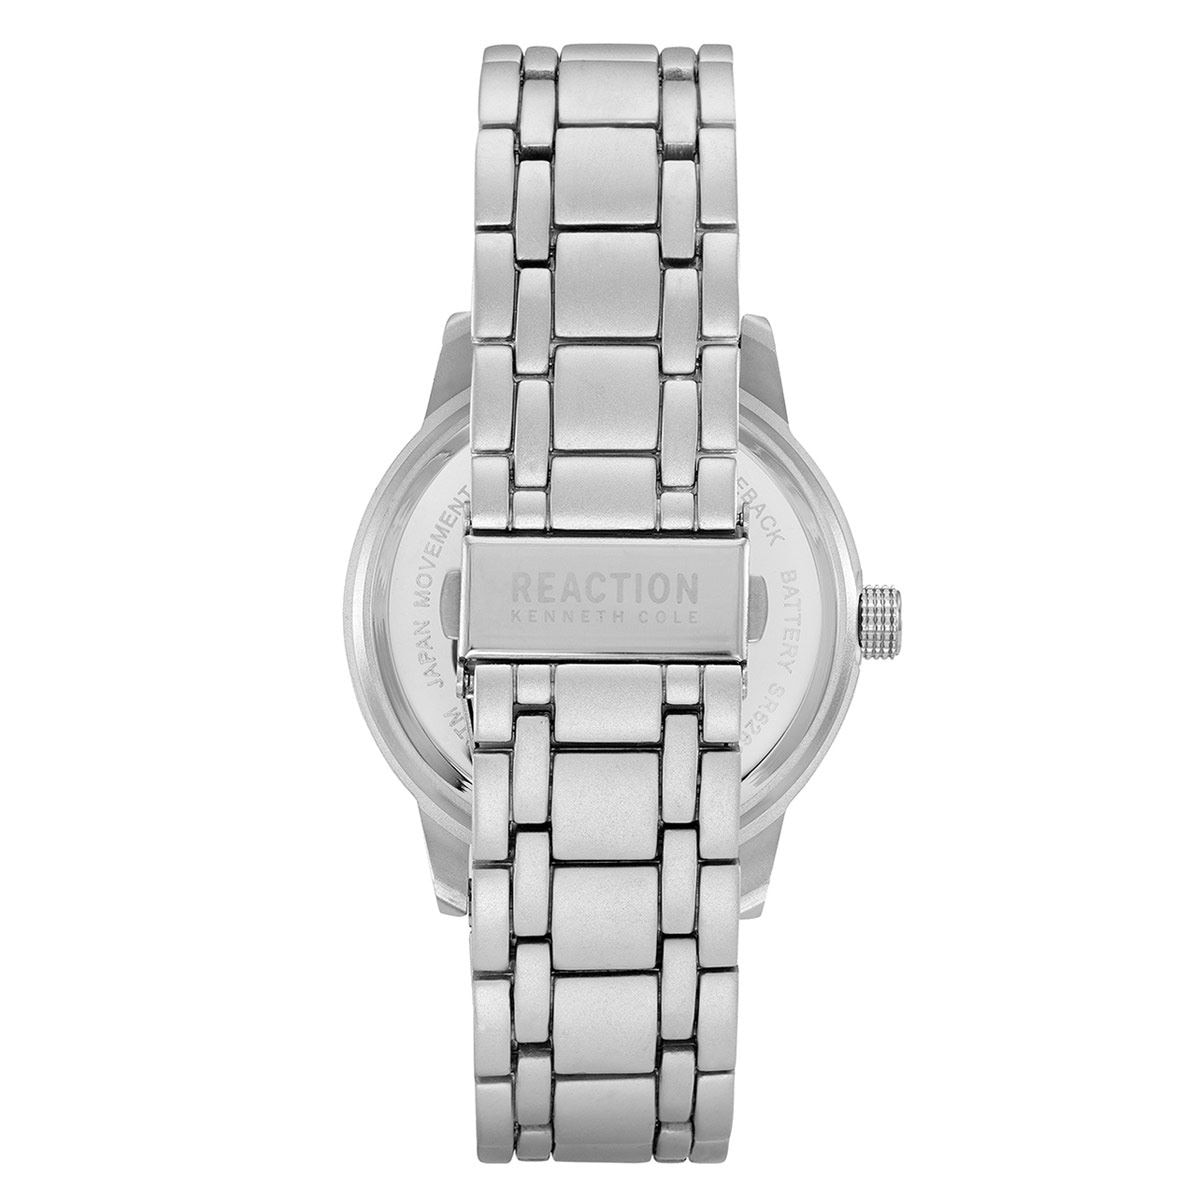 Reloj Kenneth Cole Reaction RK50903005 Para Caballero